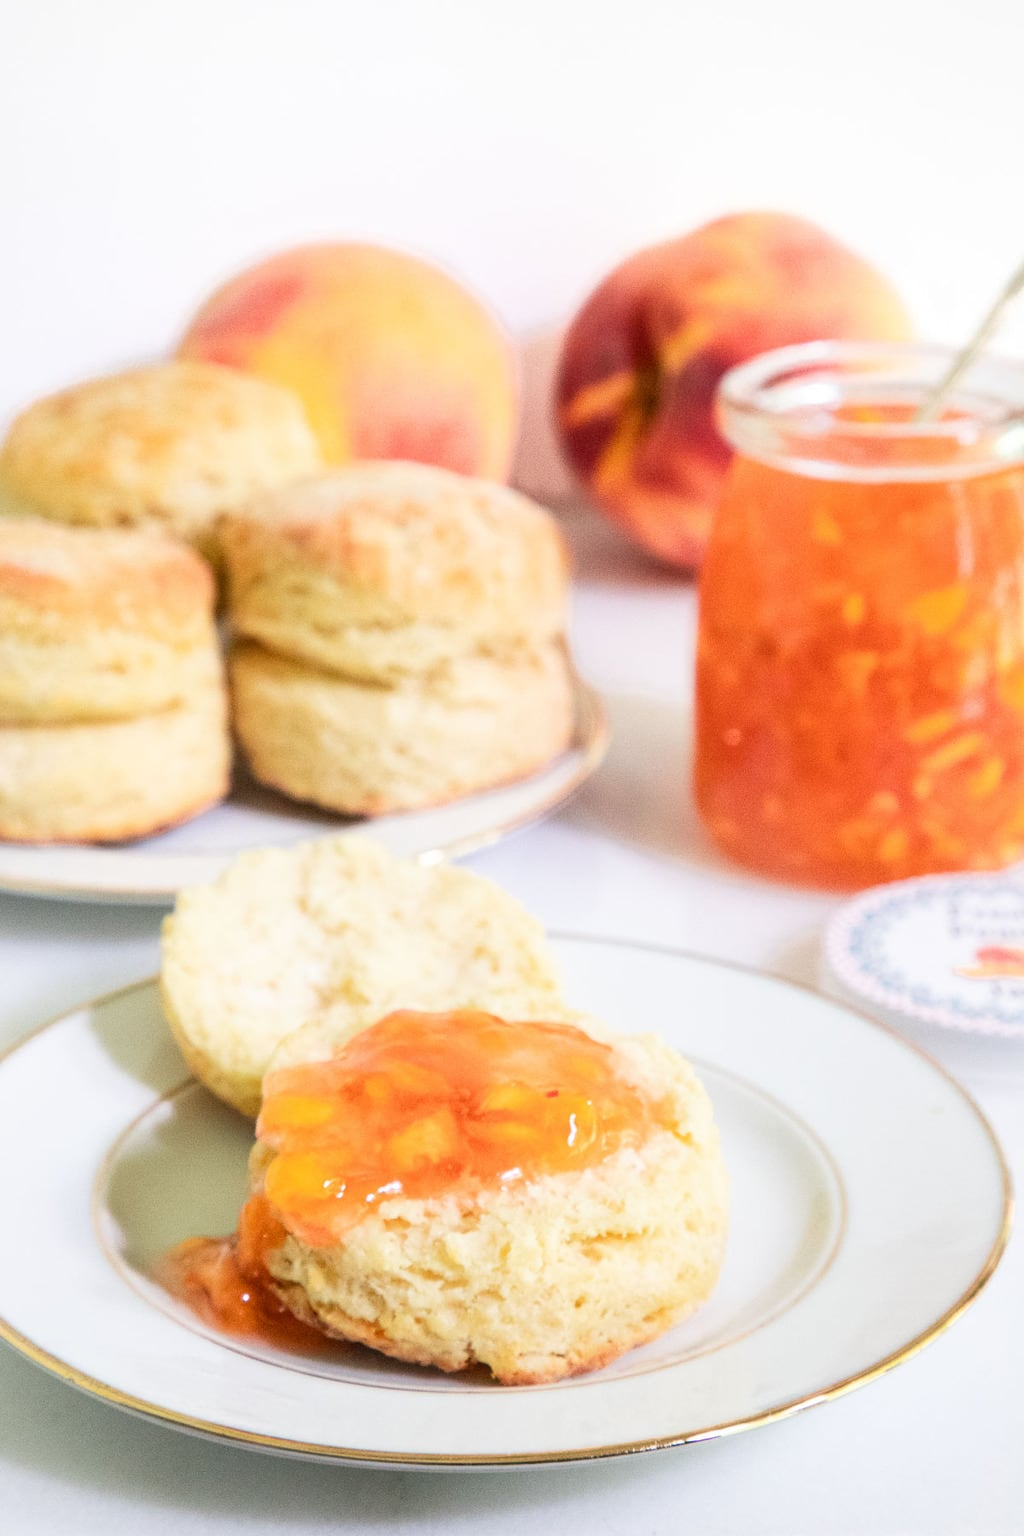 Vertical photo of a biscuit served with Easy Peach Freezer Jam spread over the top.